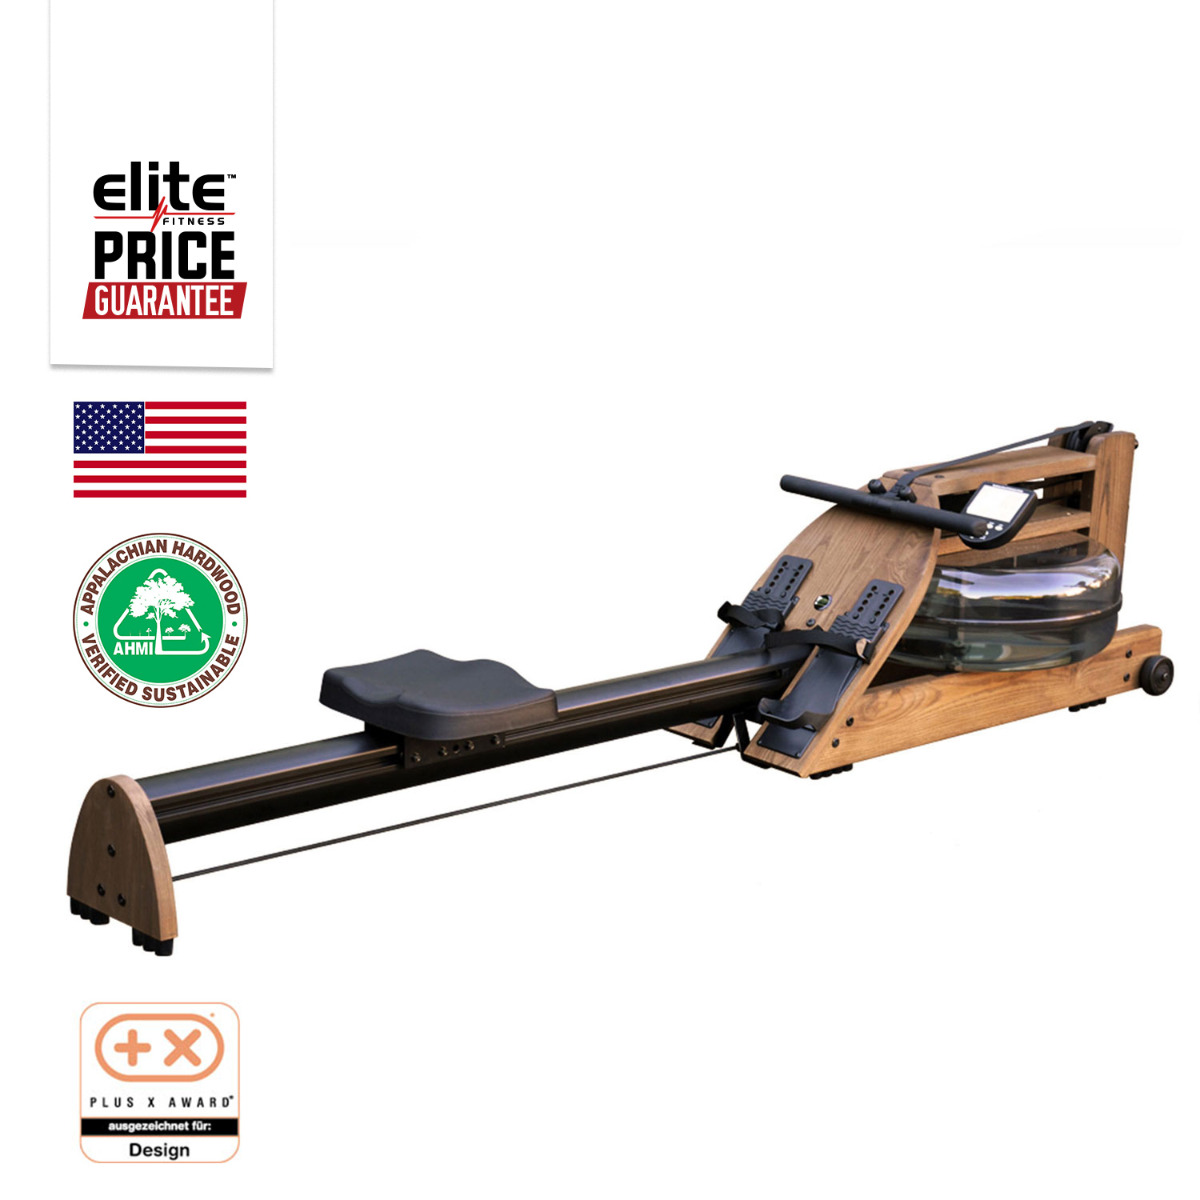 A1S4 WALNUT HOME ROWING MACHINE 2016